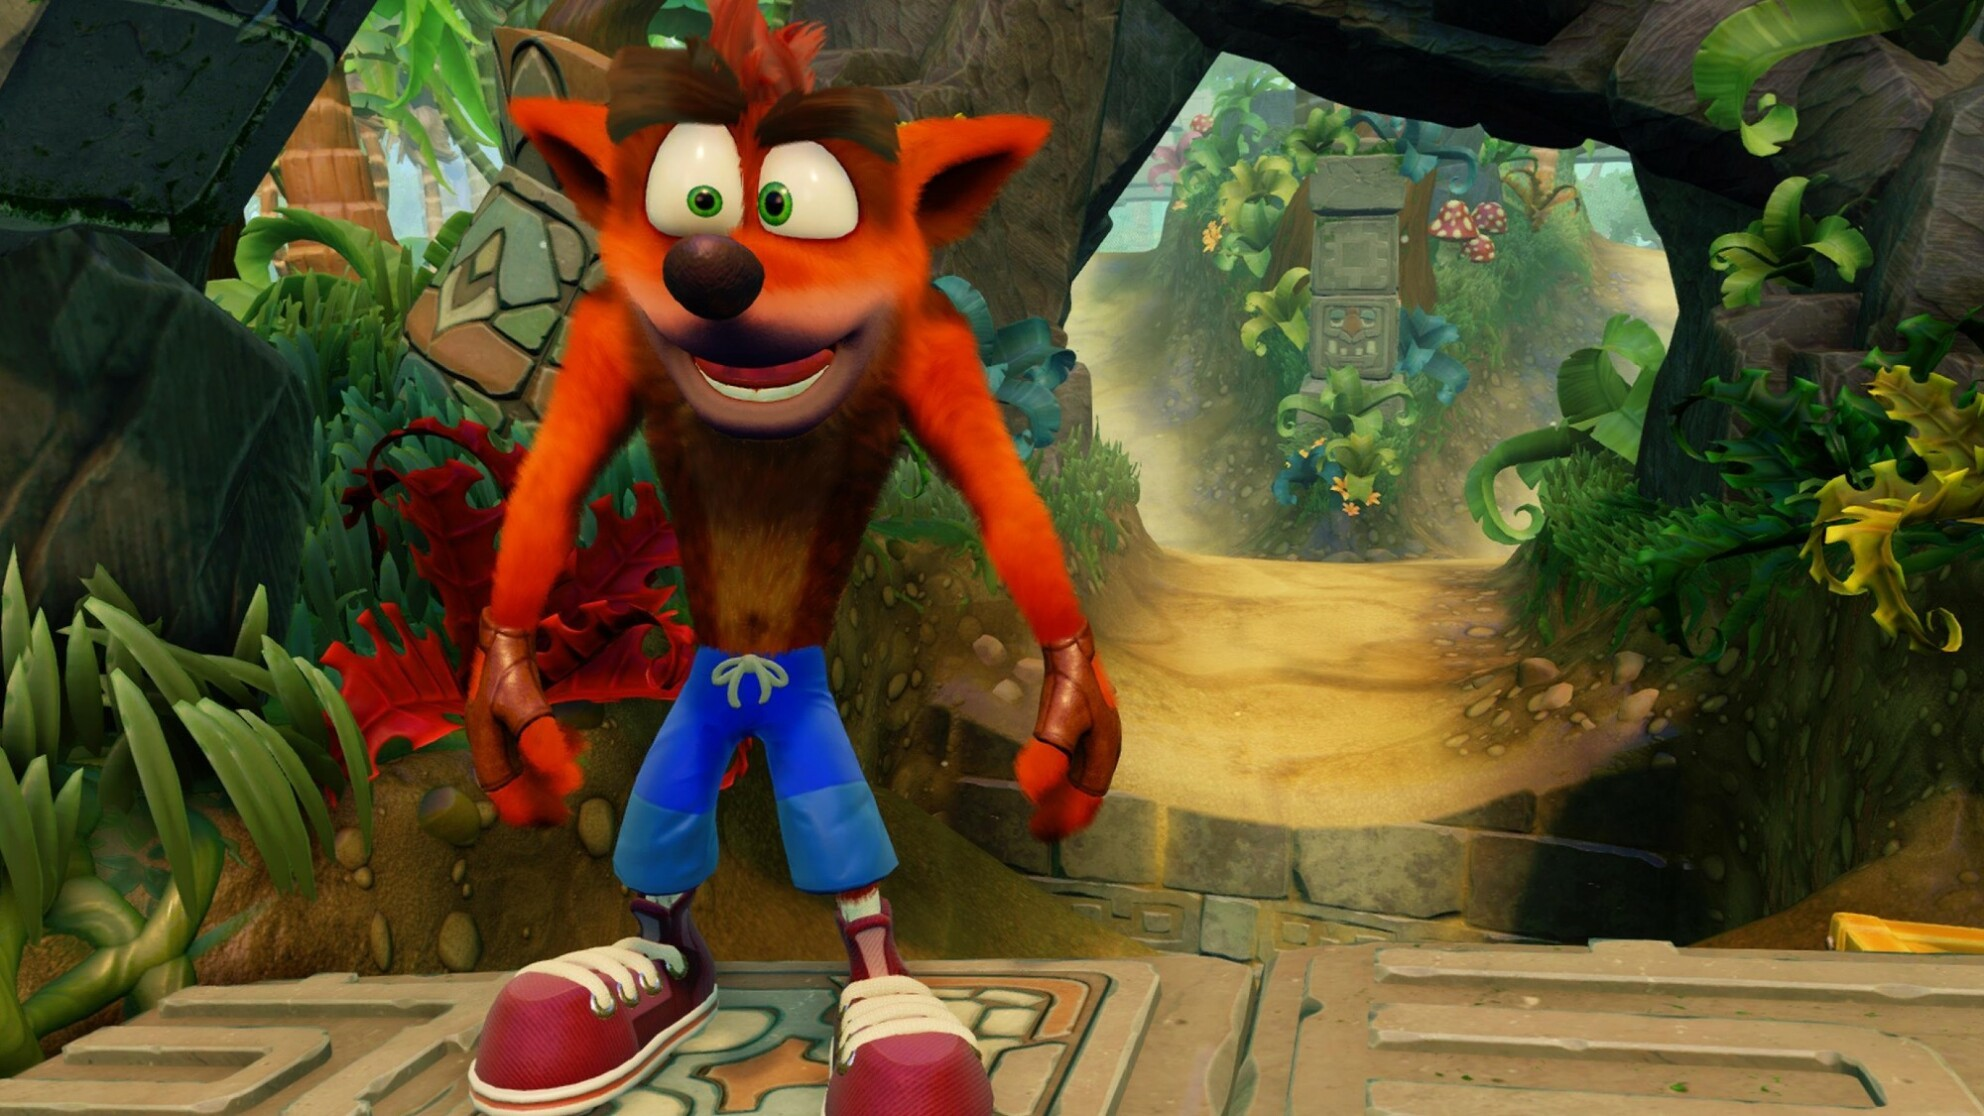 Crash Bandicoot allegedly coming to Super Smash Bros. Ultimate